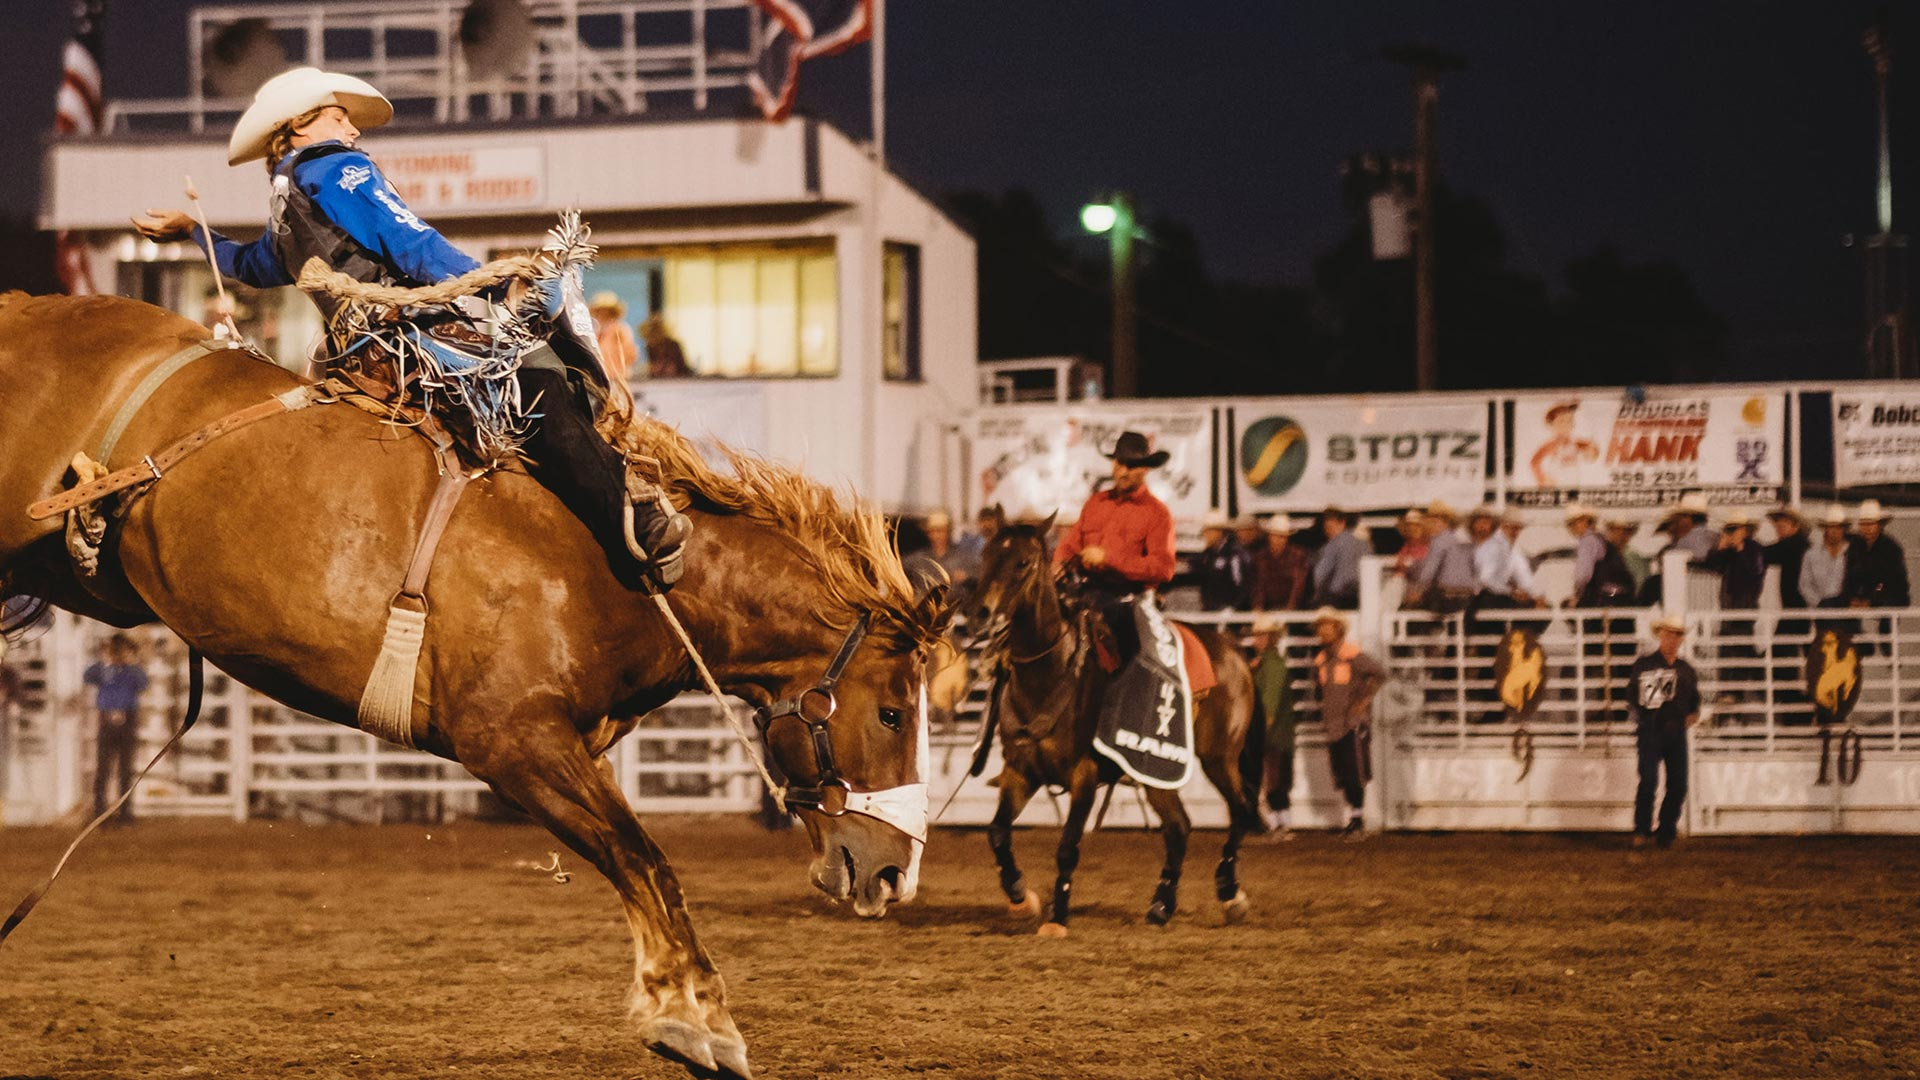 PRCA Rodeo & WY State Championship Ranch Rodeo